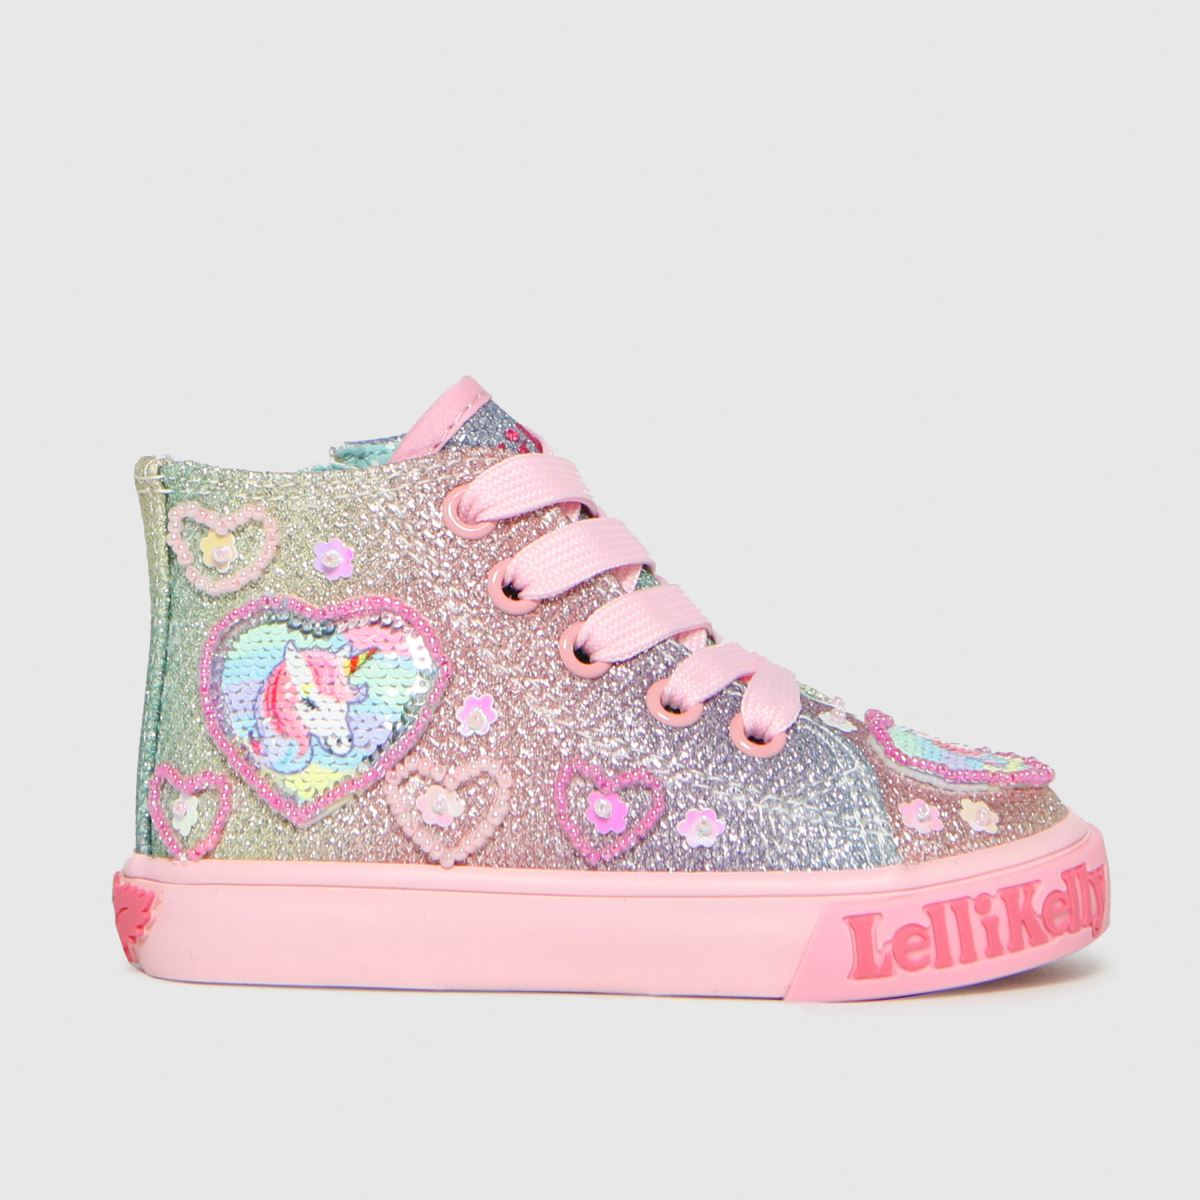 Lelli Kelly Pink Gem Baby Mid Trainers Toddler